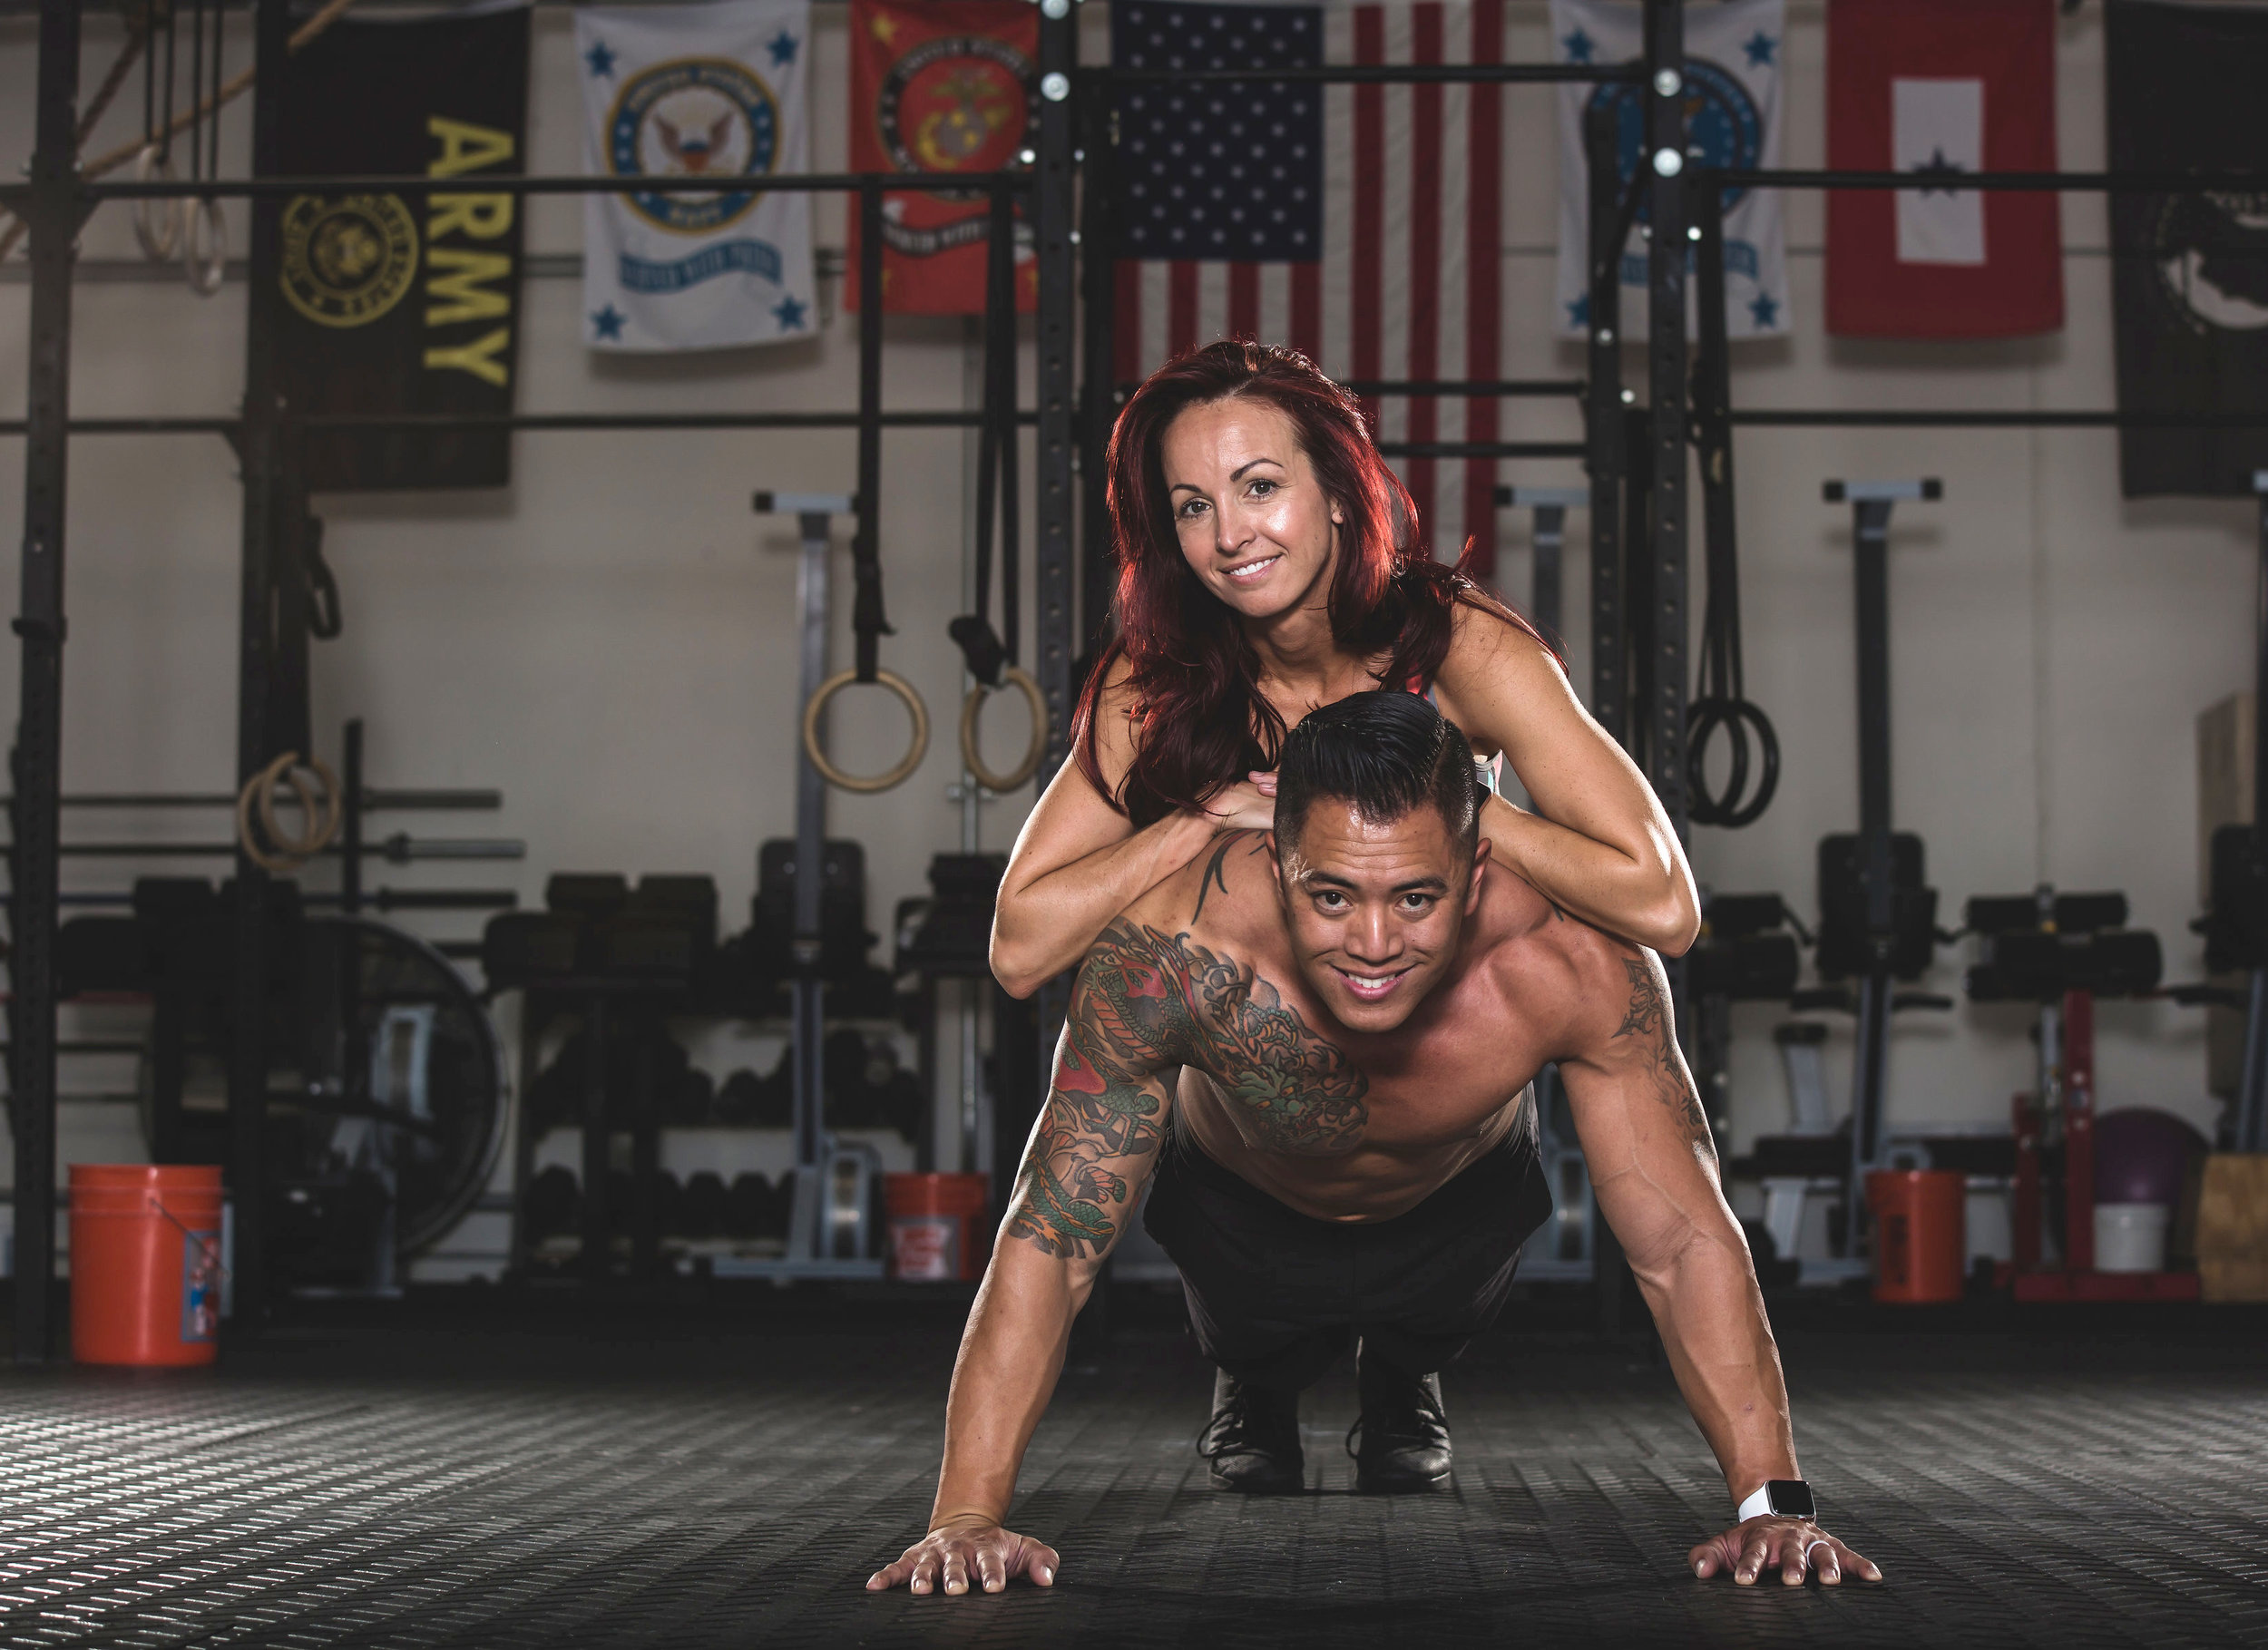 "ABOUT US - Coaches Josh & Tonya will help prepare a week-by-week plan to help you get closer to the goals that you choose, not goals that someone else sets for you.Whether your ideal ""you"" is leaner, buffer, faster, stronger, or anything that you've had a hard time achieving on your own, we'll prescribe a specific set of macronutrients and maybe some workouts that will get you to where you want to go."